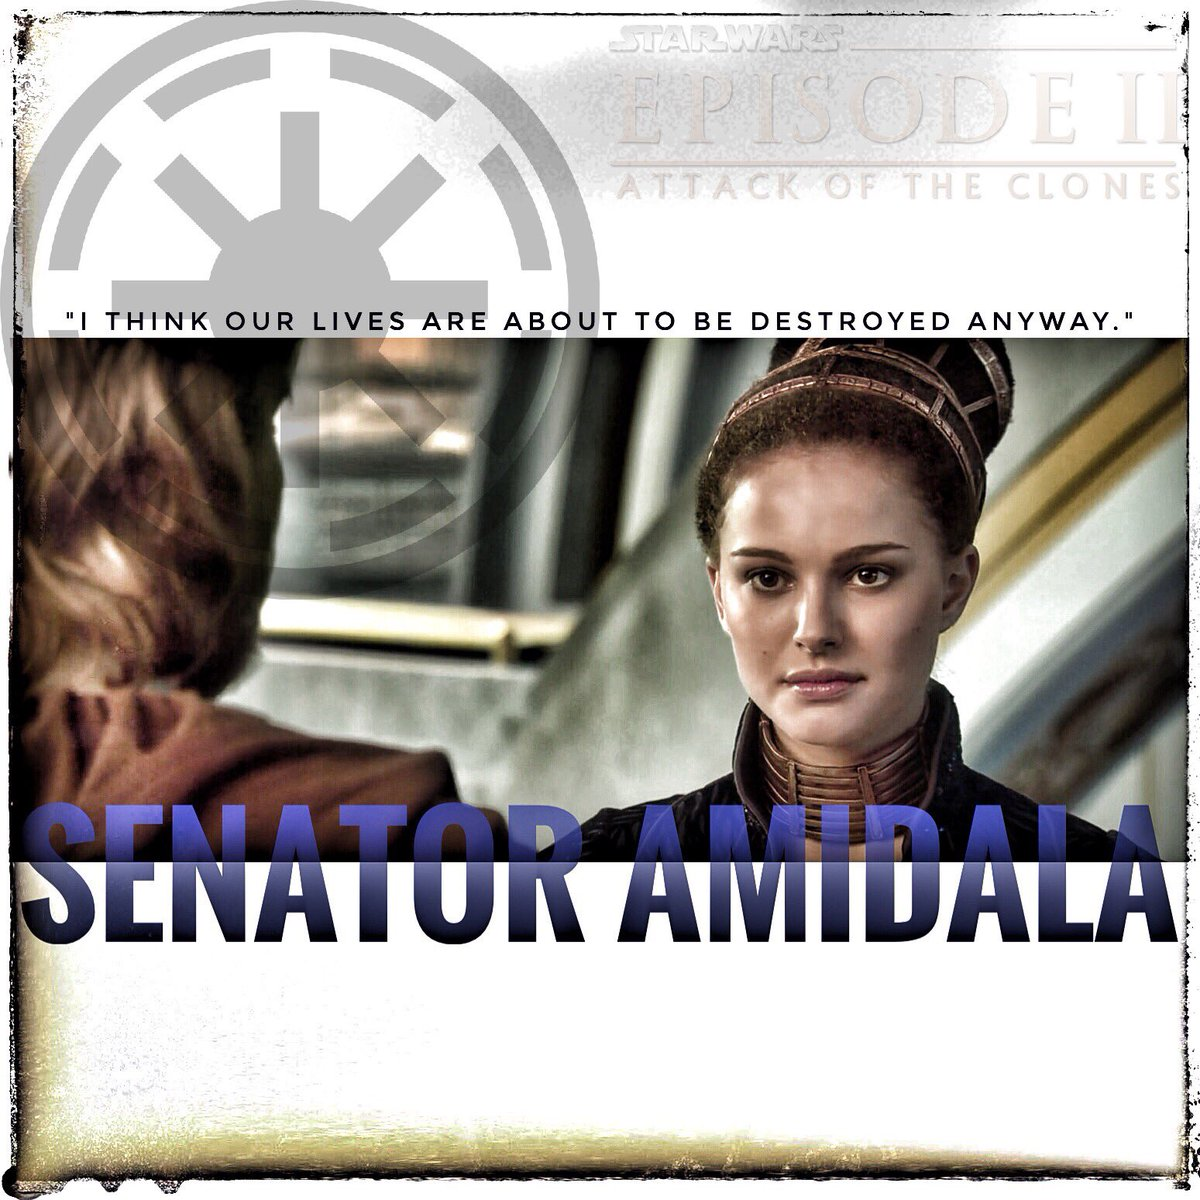 &quot;I think our lives are about to be destroyed anyway.&quot;  #SenatorAmidala #AttackOfTheClones #StarWars<br>http://pic.twitter.com/BqeEttznxw